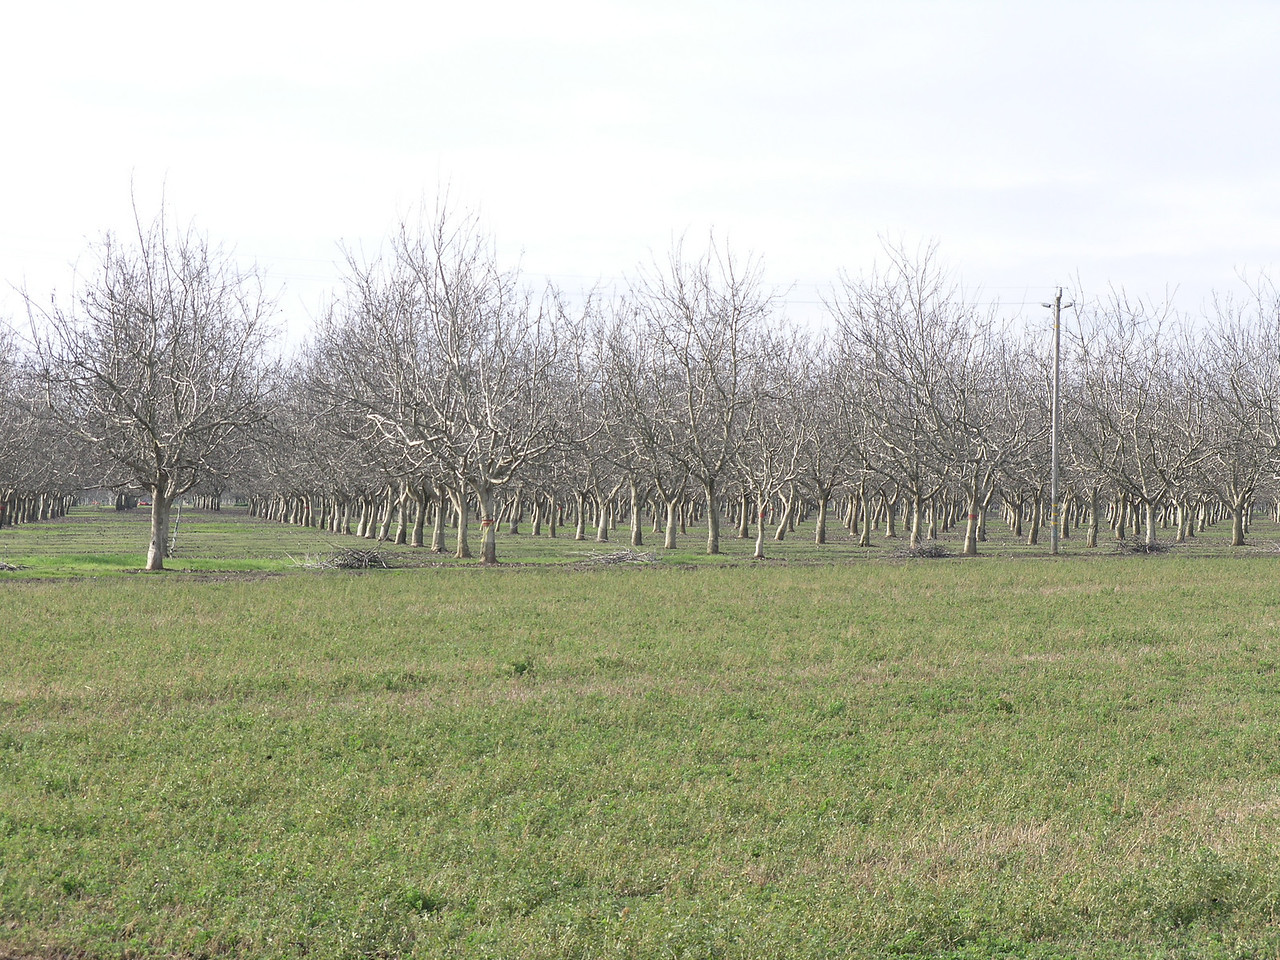 This is a juvenile walnut orchard probably in the five year range.   A nice orchard coming on strong.